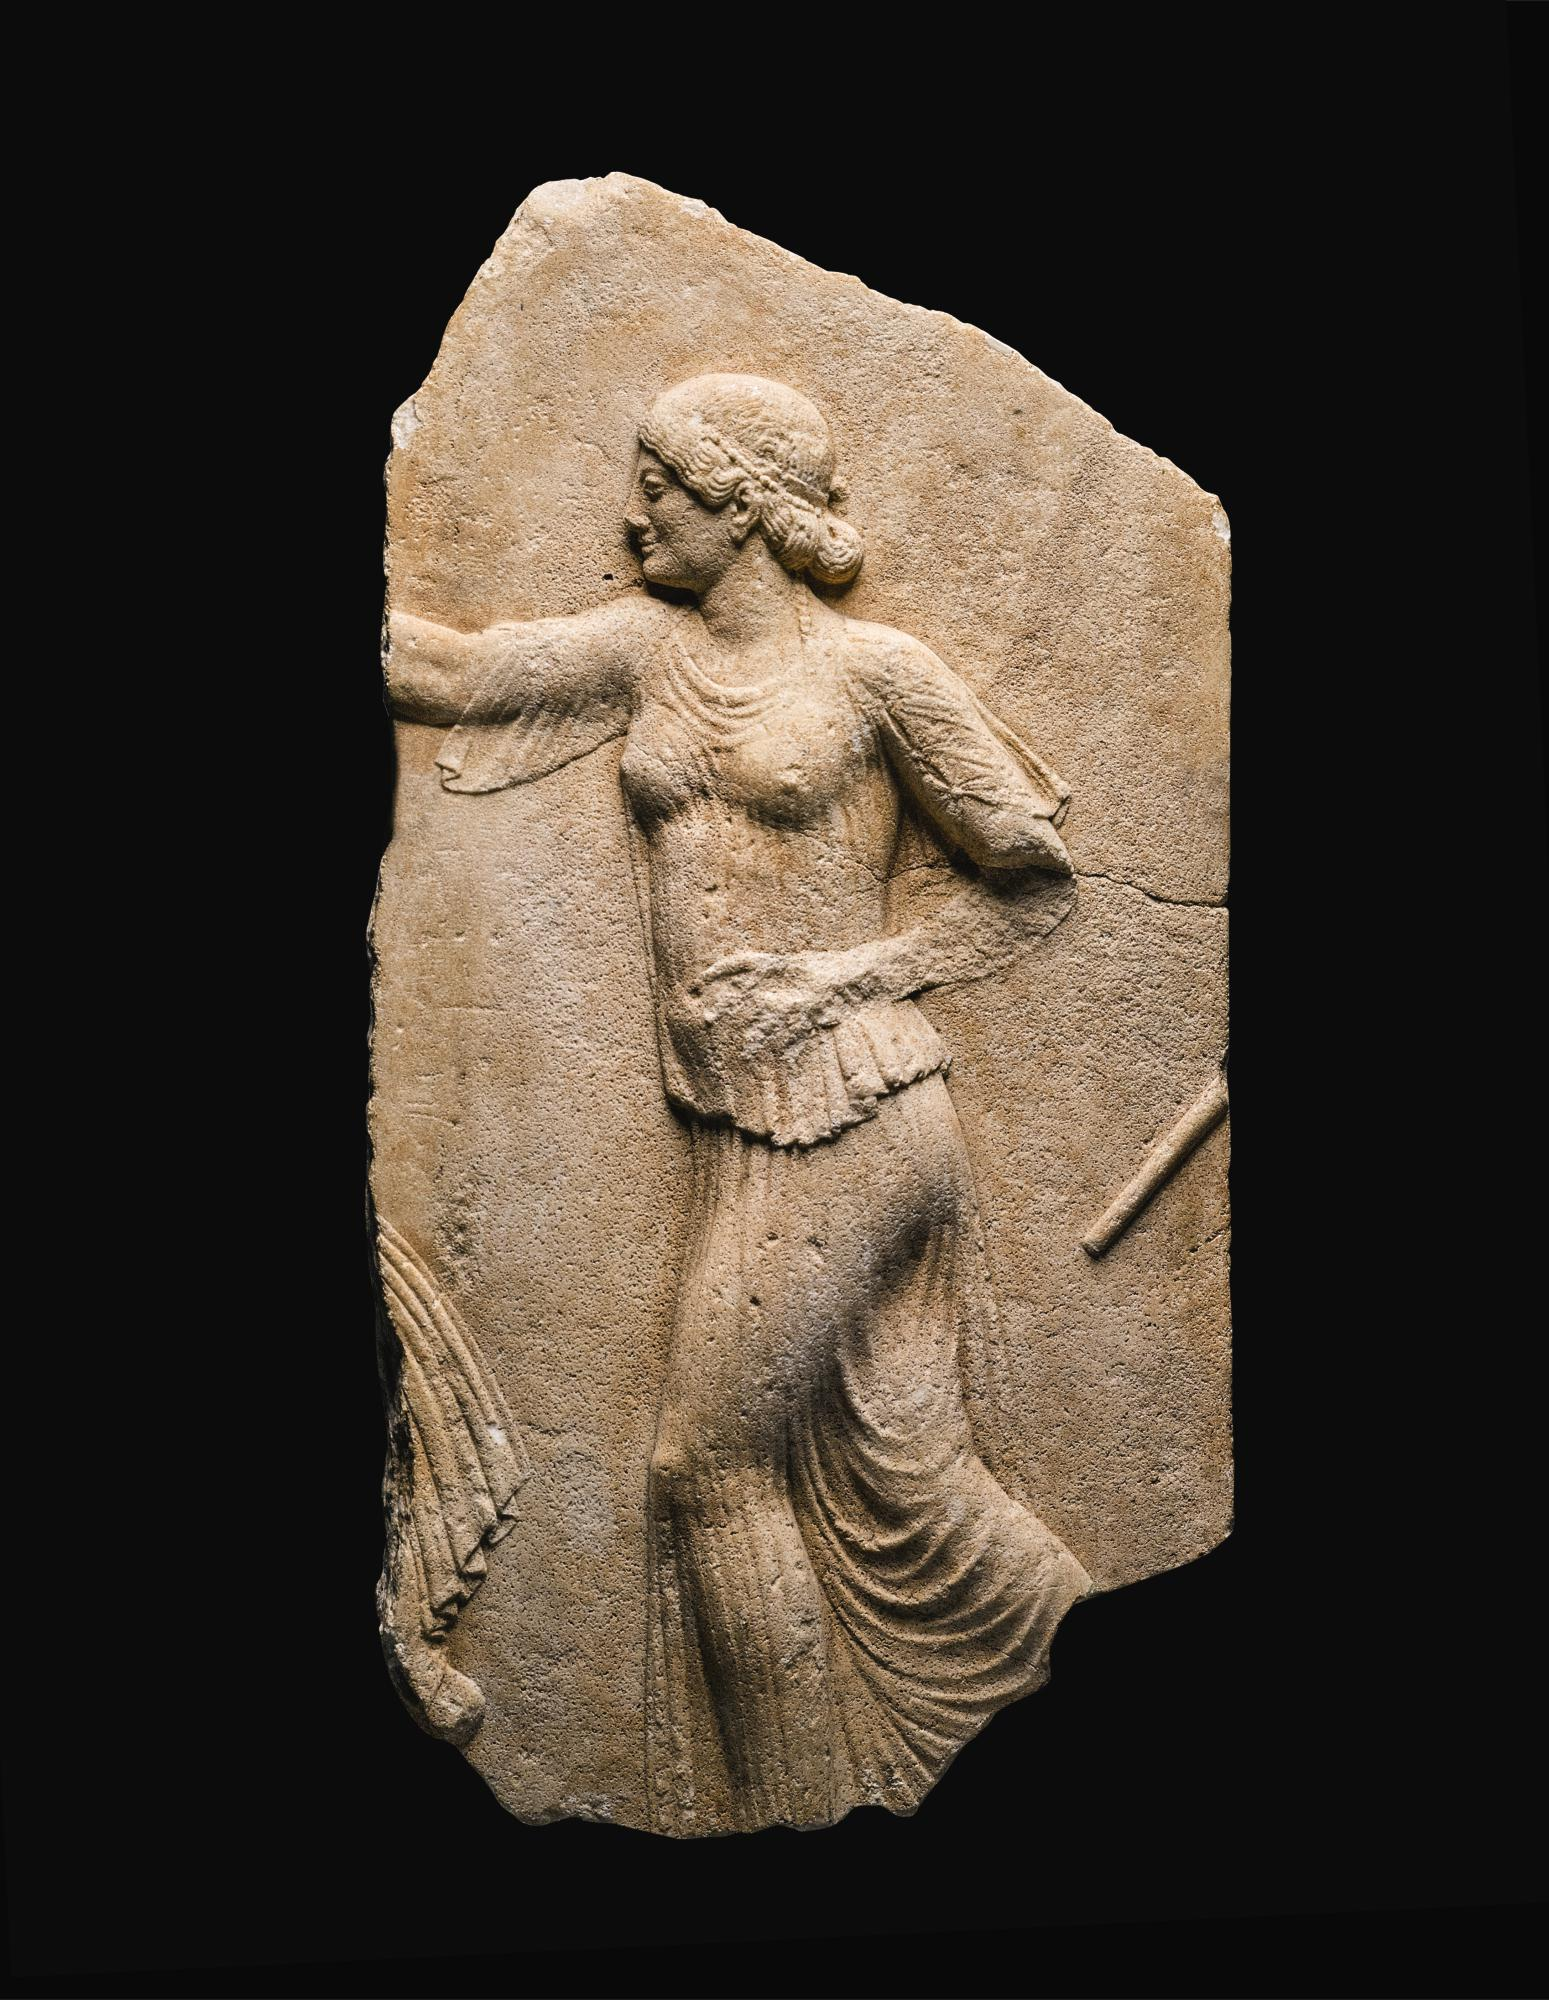 A MARBLE RELIEF FRAGMENT, 2ND QUARTER OF THE 5TH CENTURY B.C., OR LATER